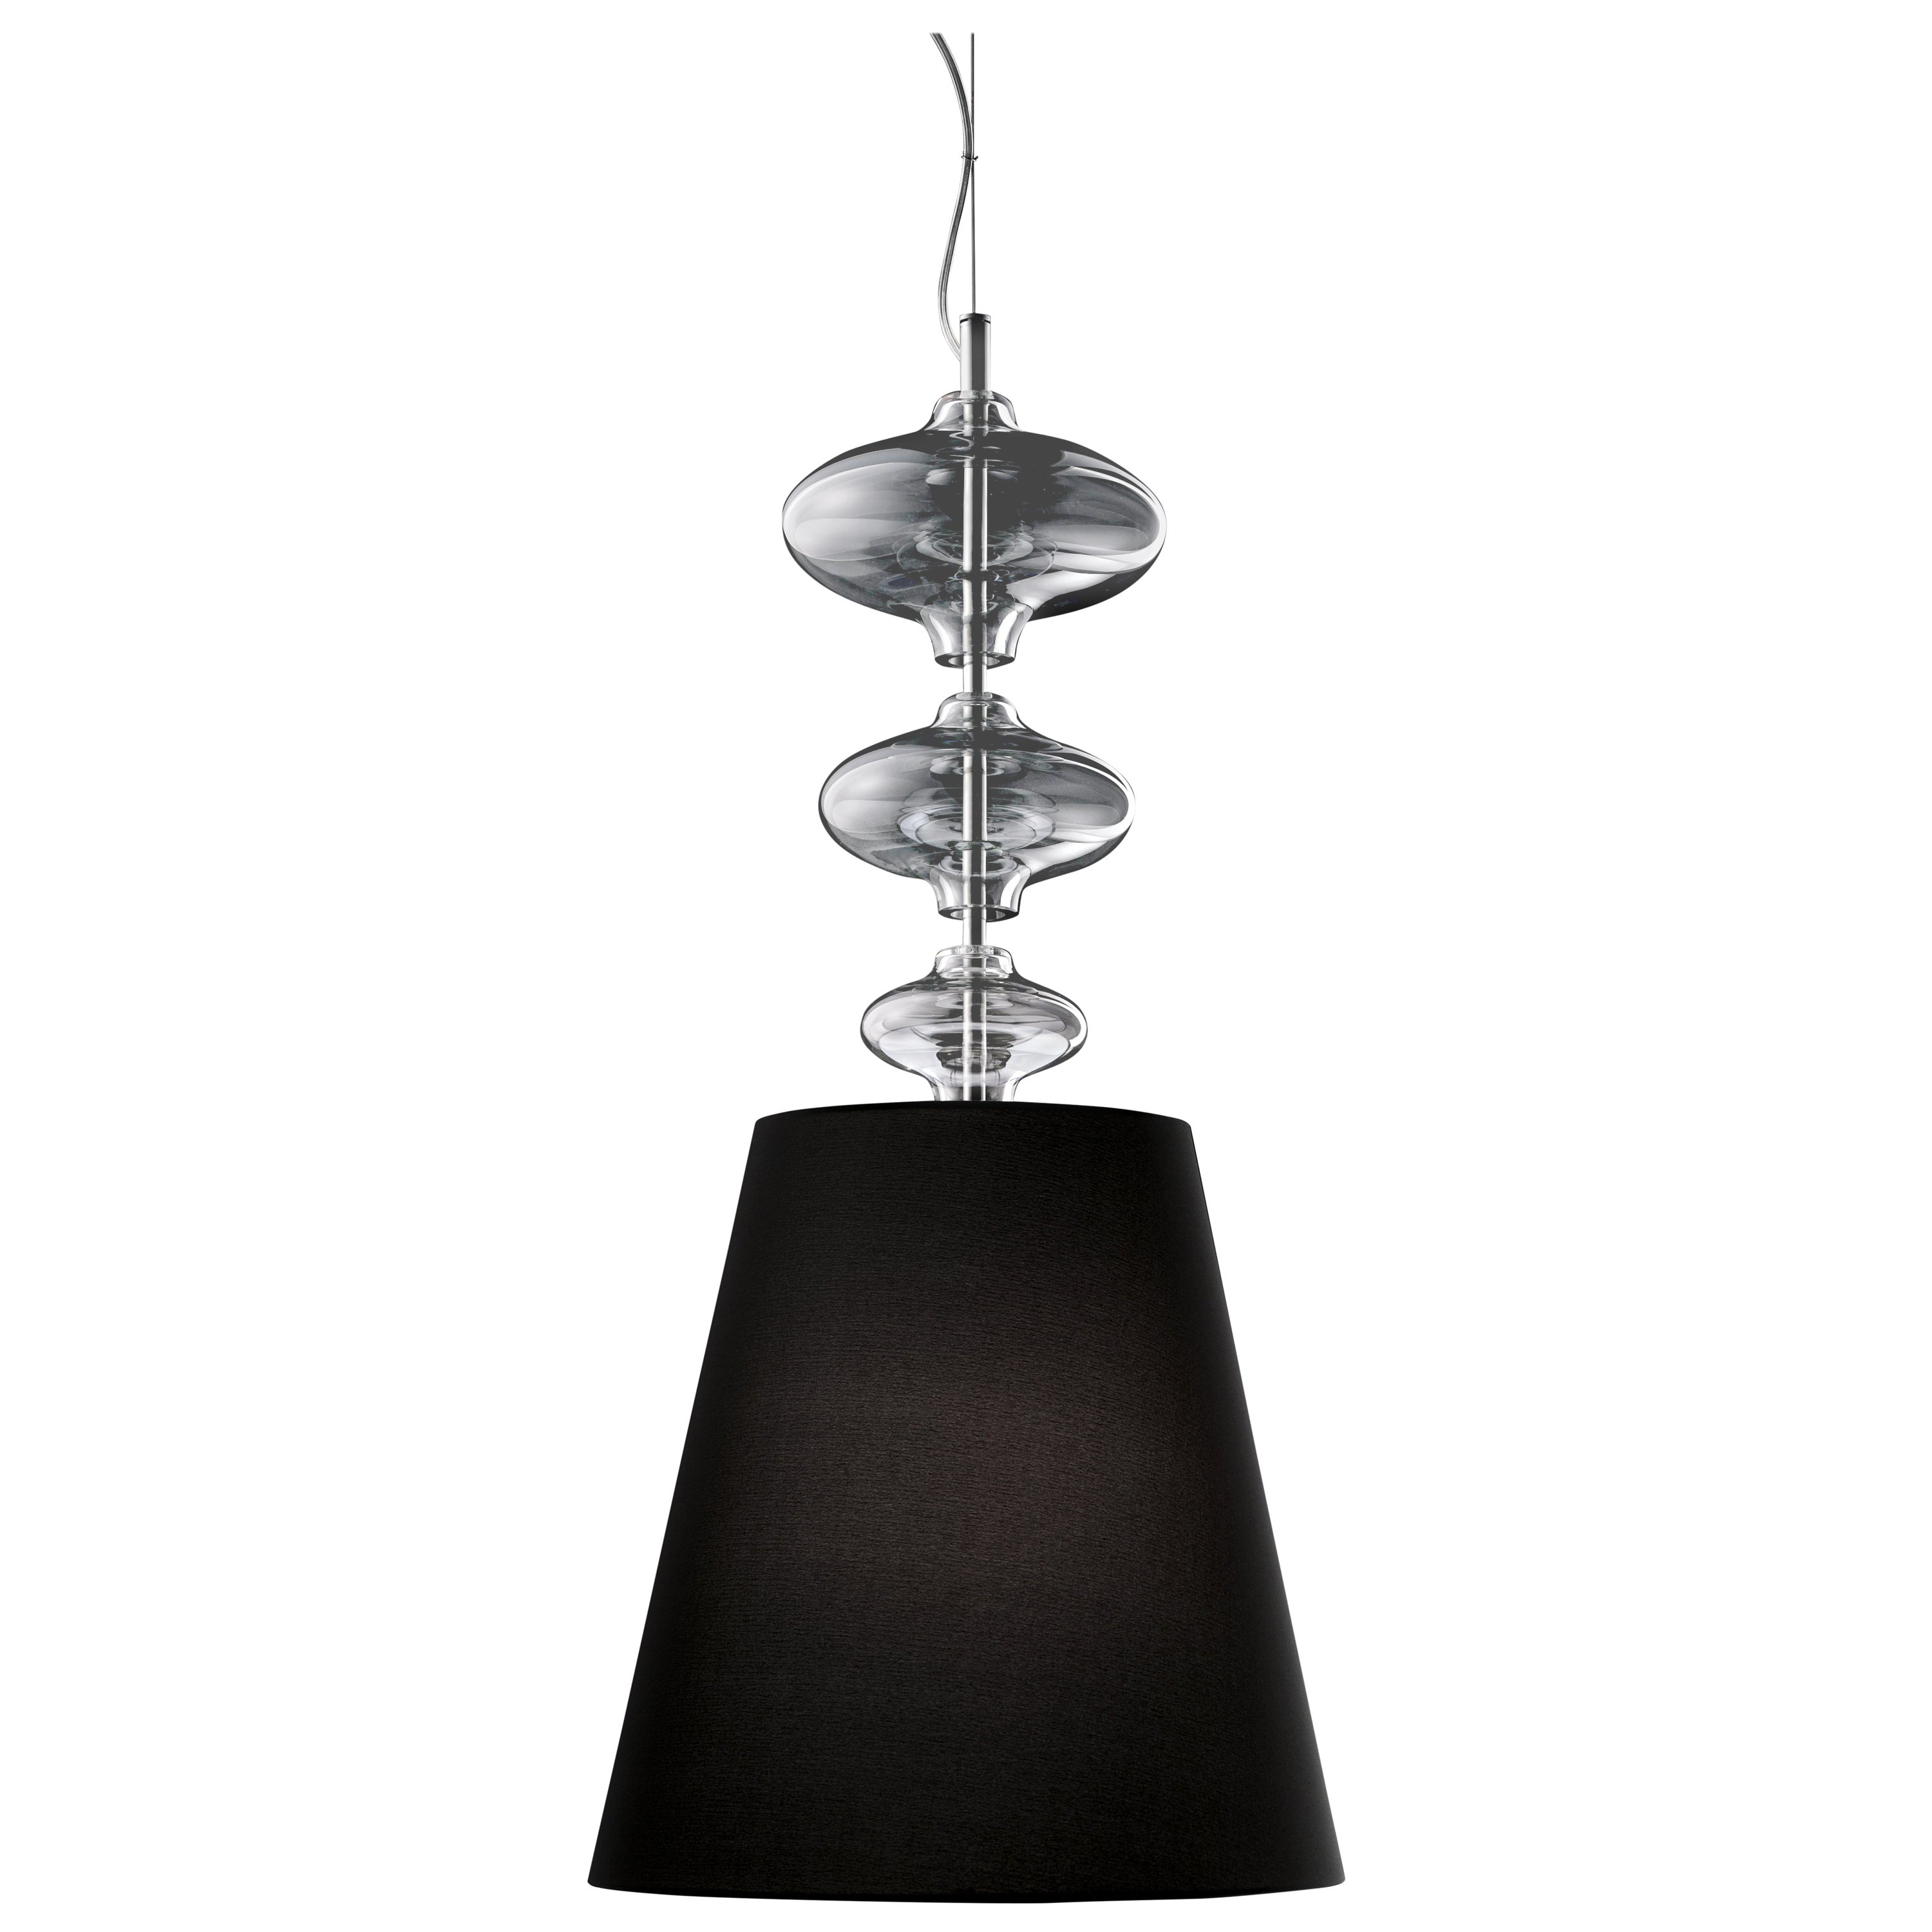 Eva 7057 Suspension Lamp in Glass with Black Shade, by Barovier&Toso